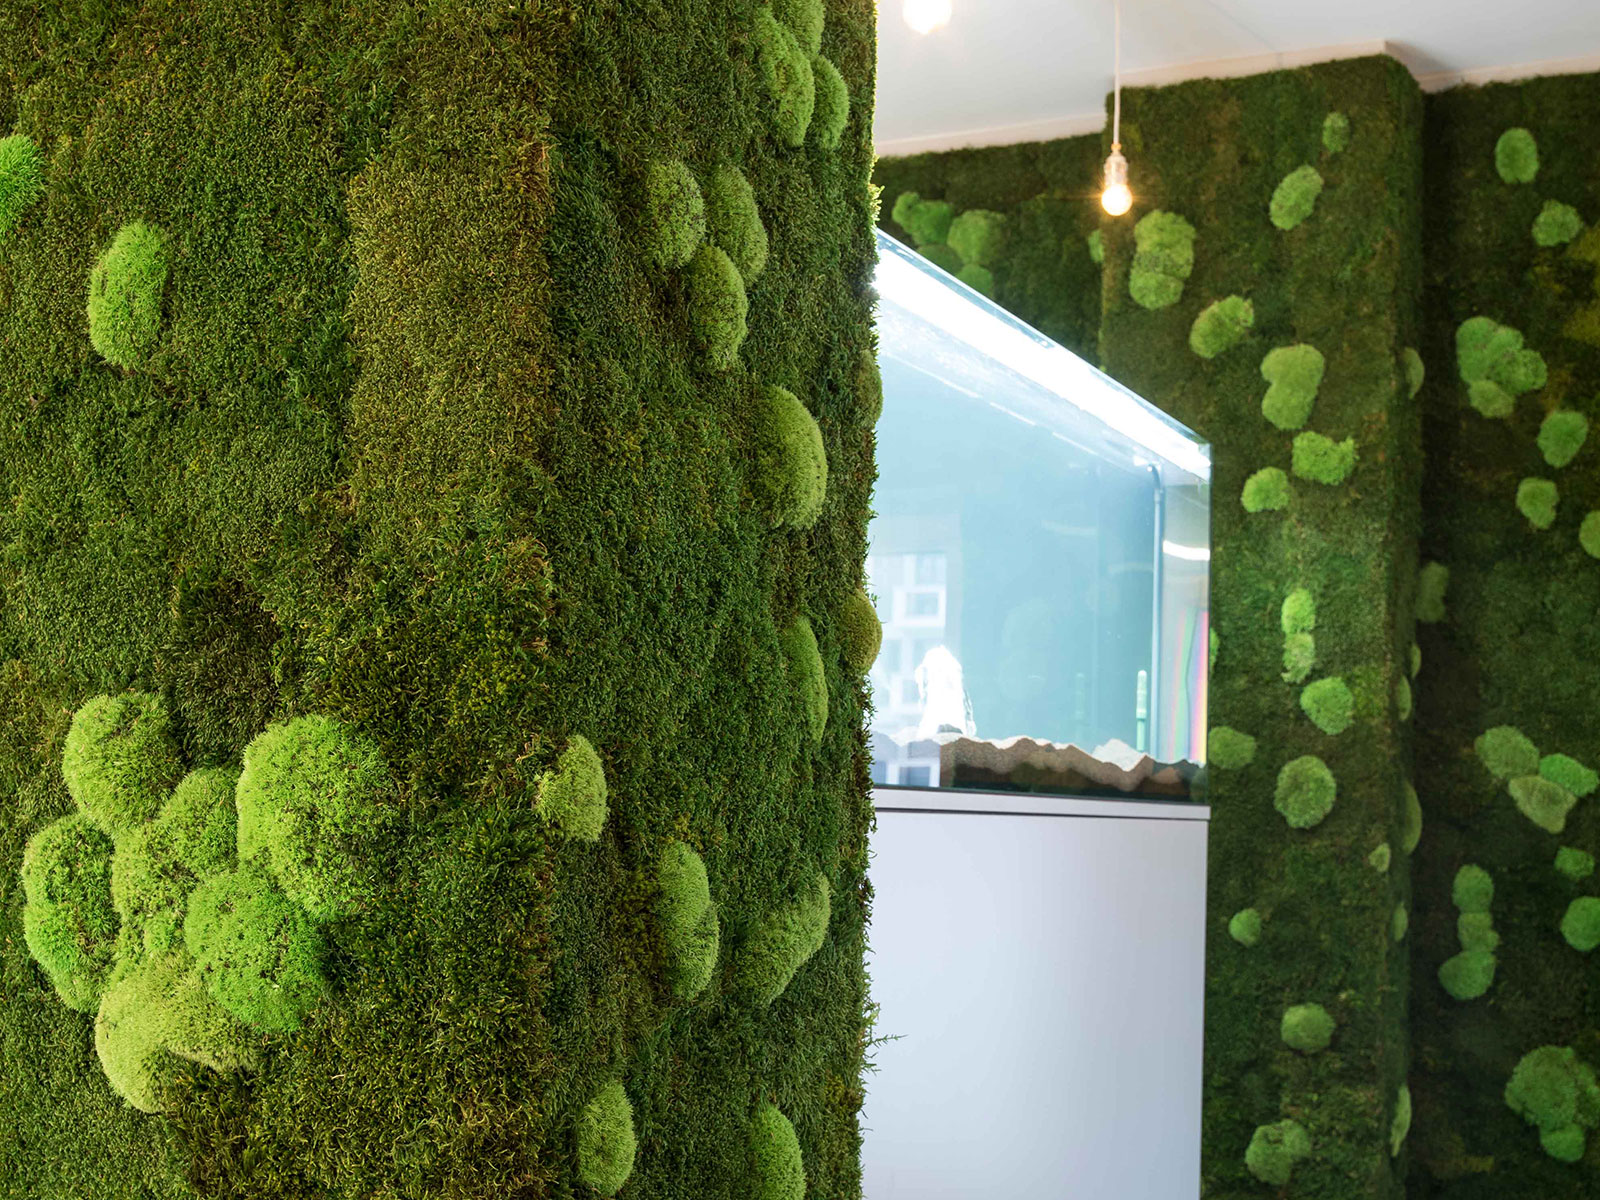 mooswand selber bauen moss wall diy solution from stylegreen moos terrarium idee inspiration. Black Bedroom Furniture Sets. Home Design Ideas